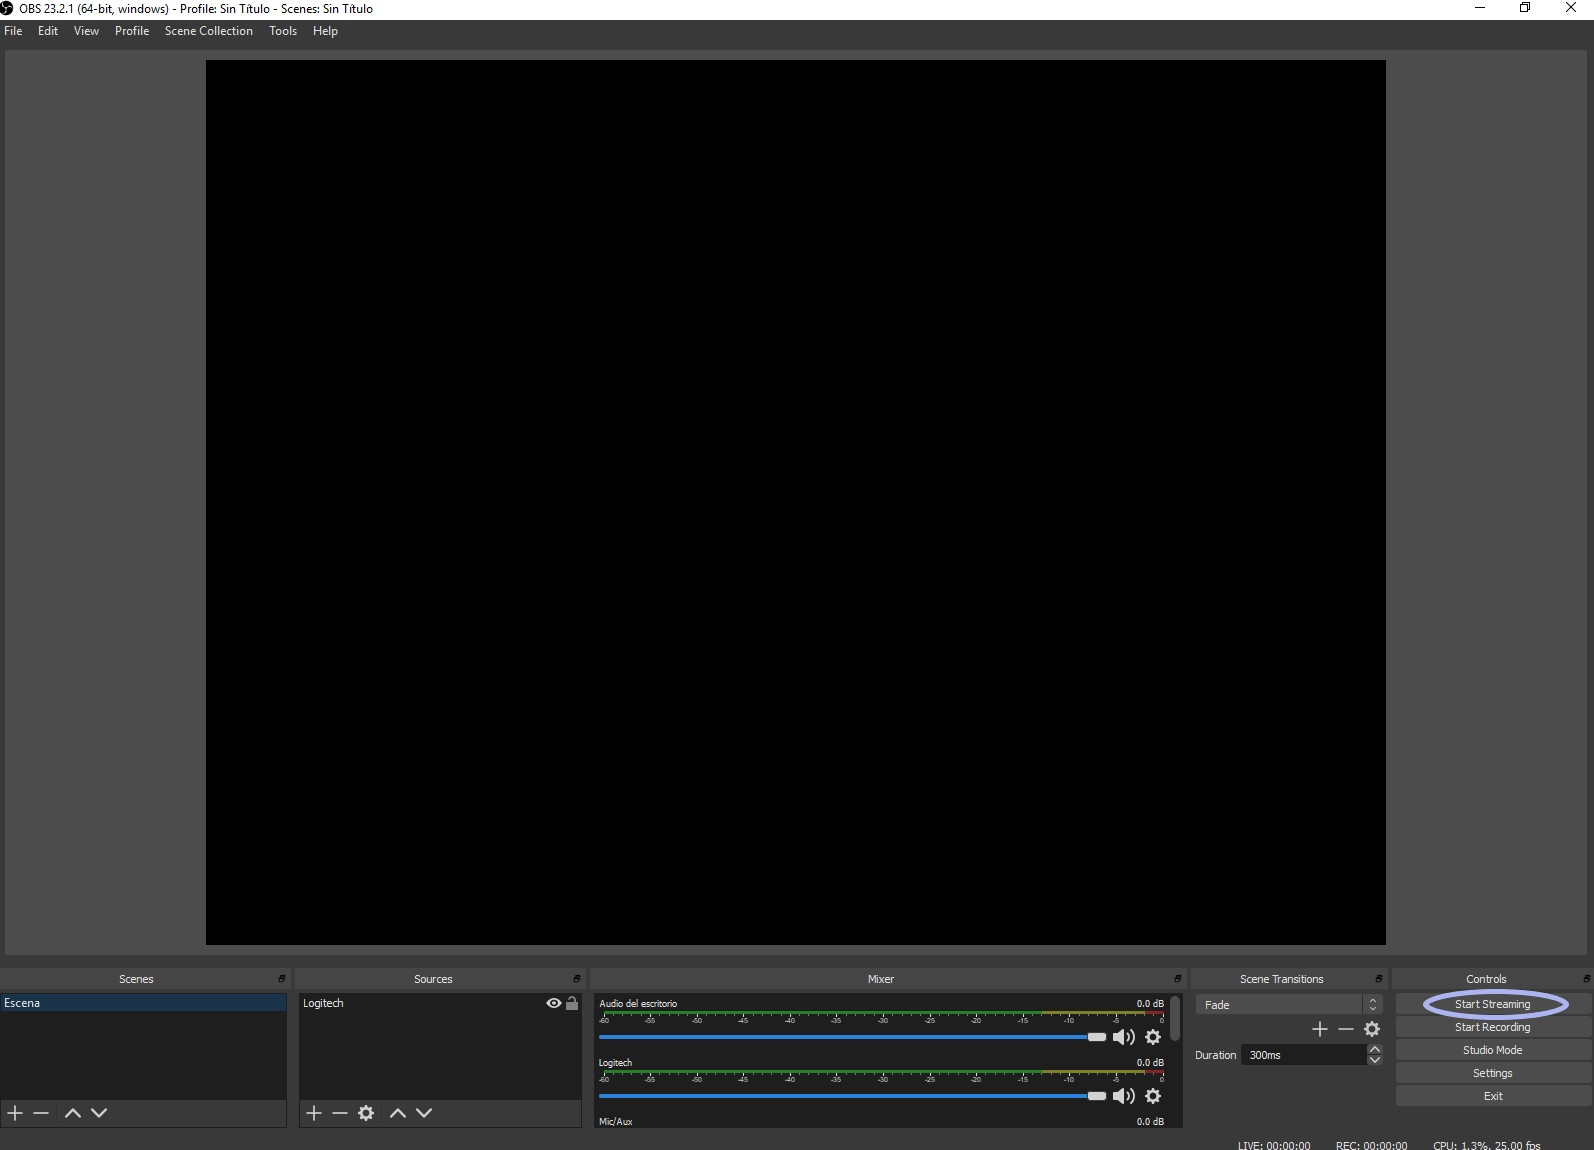 Start streaming from the OBS software to stream